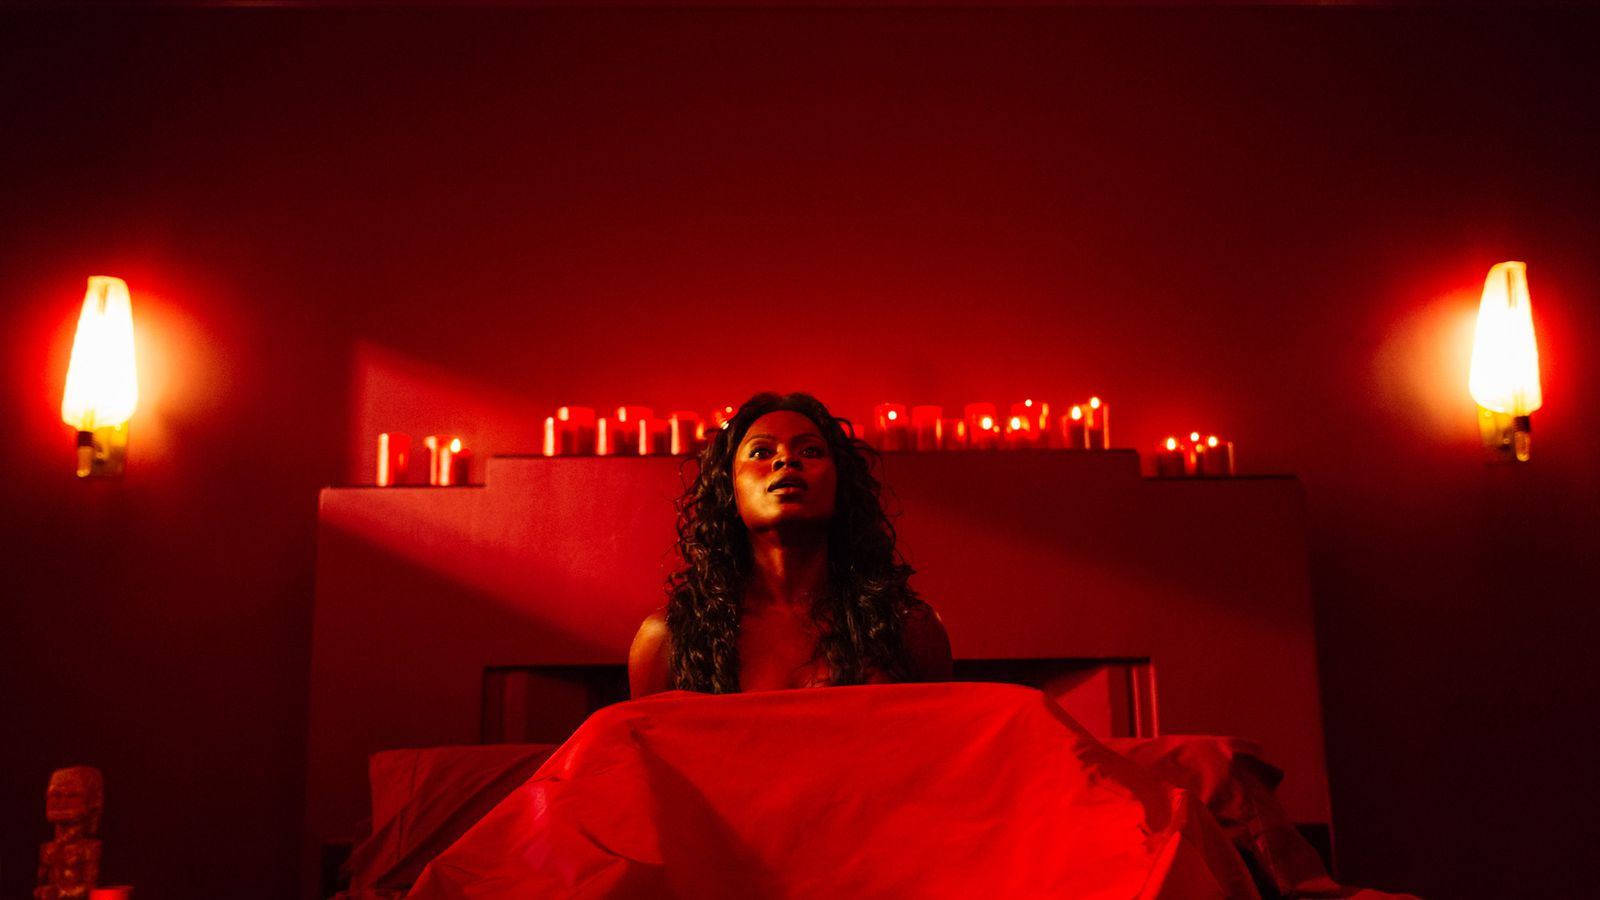 American Gods' most explicit sex scene is a lesson in respectful filmmaking